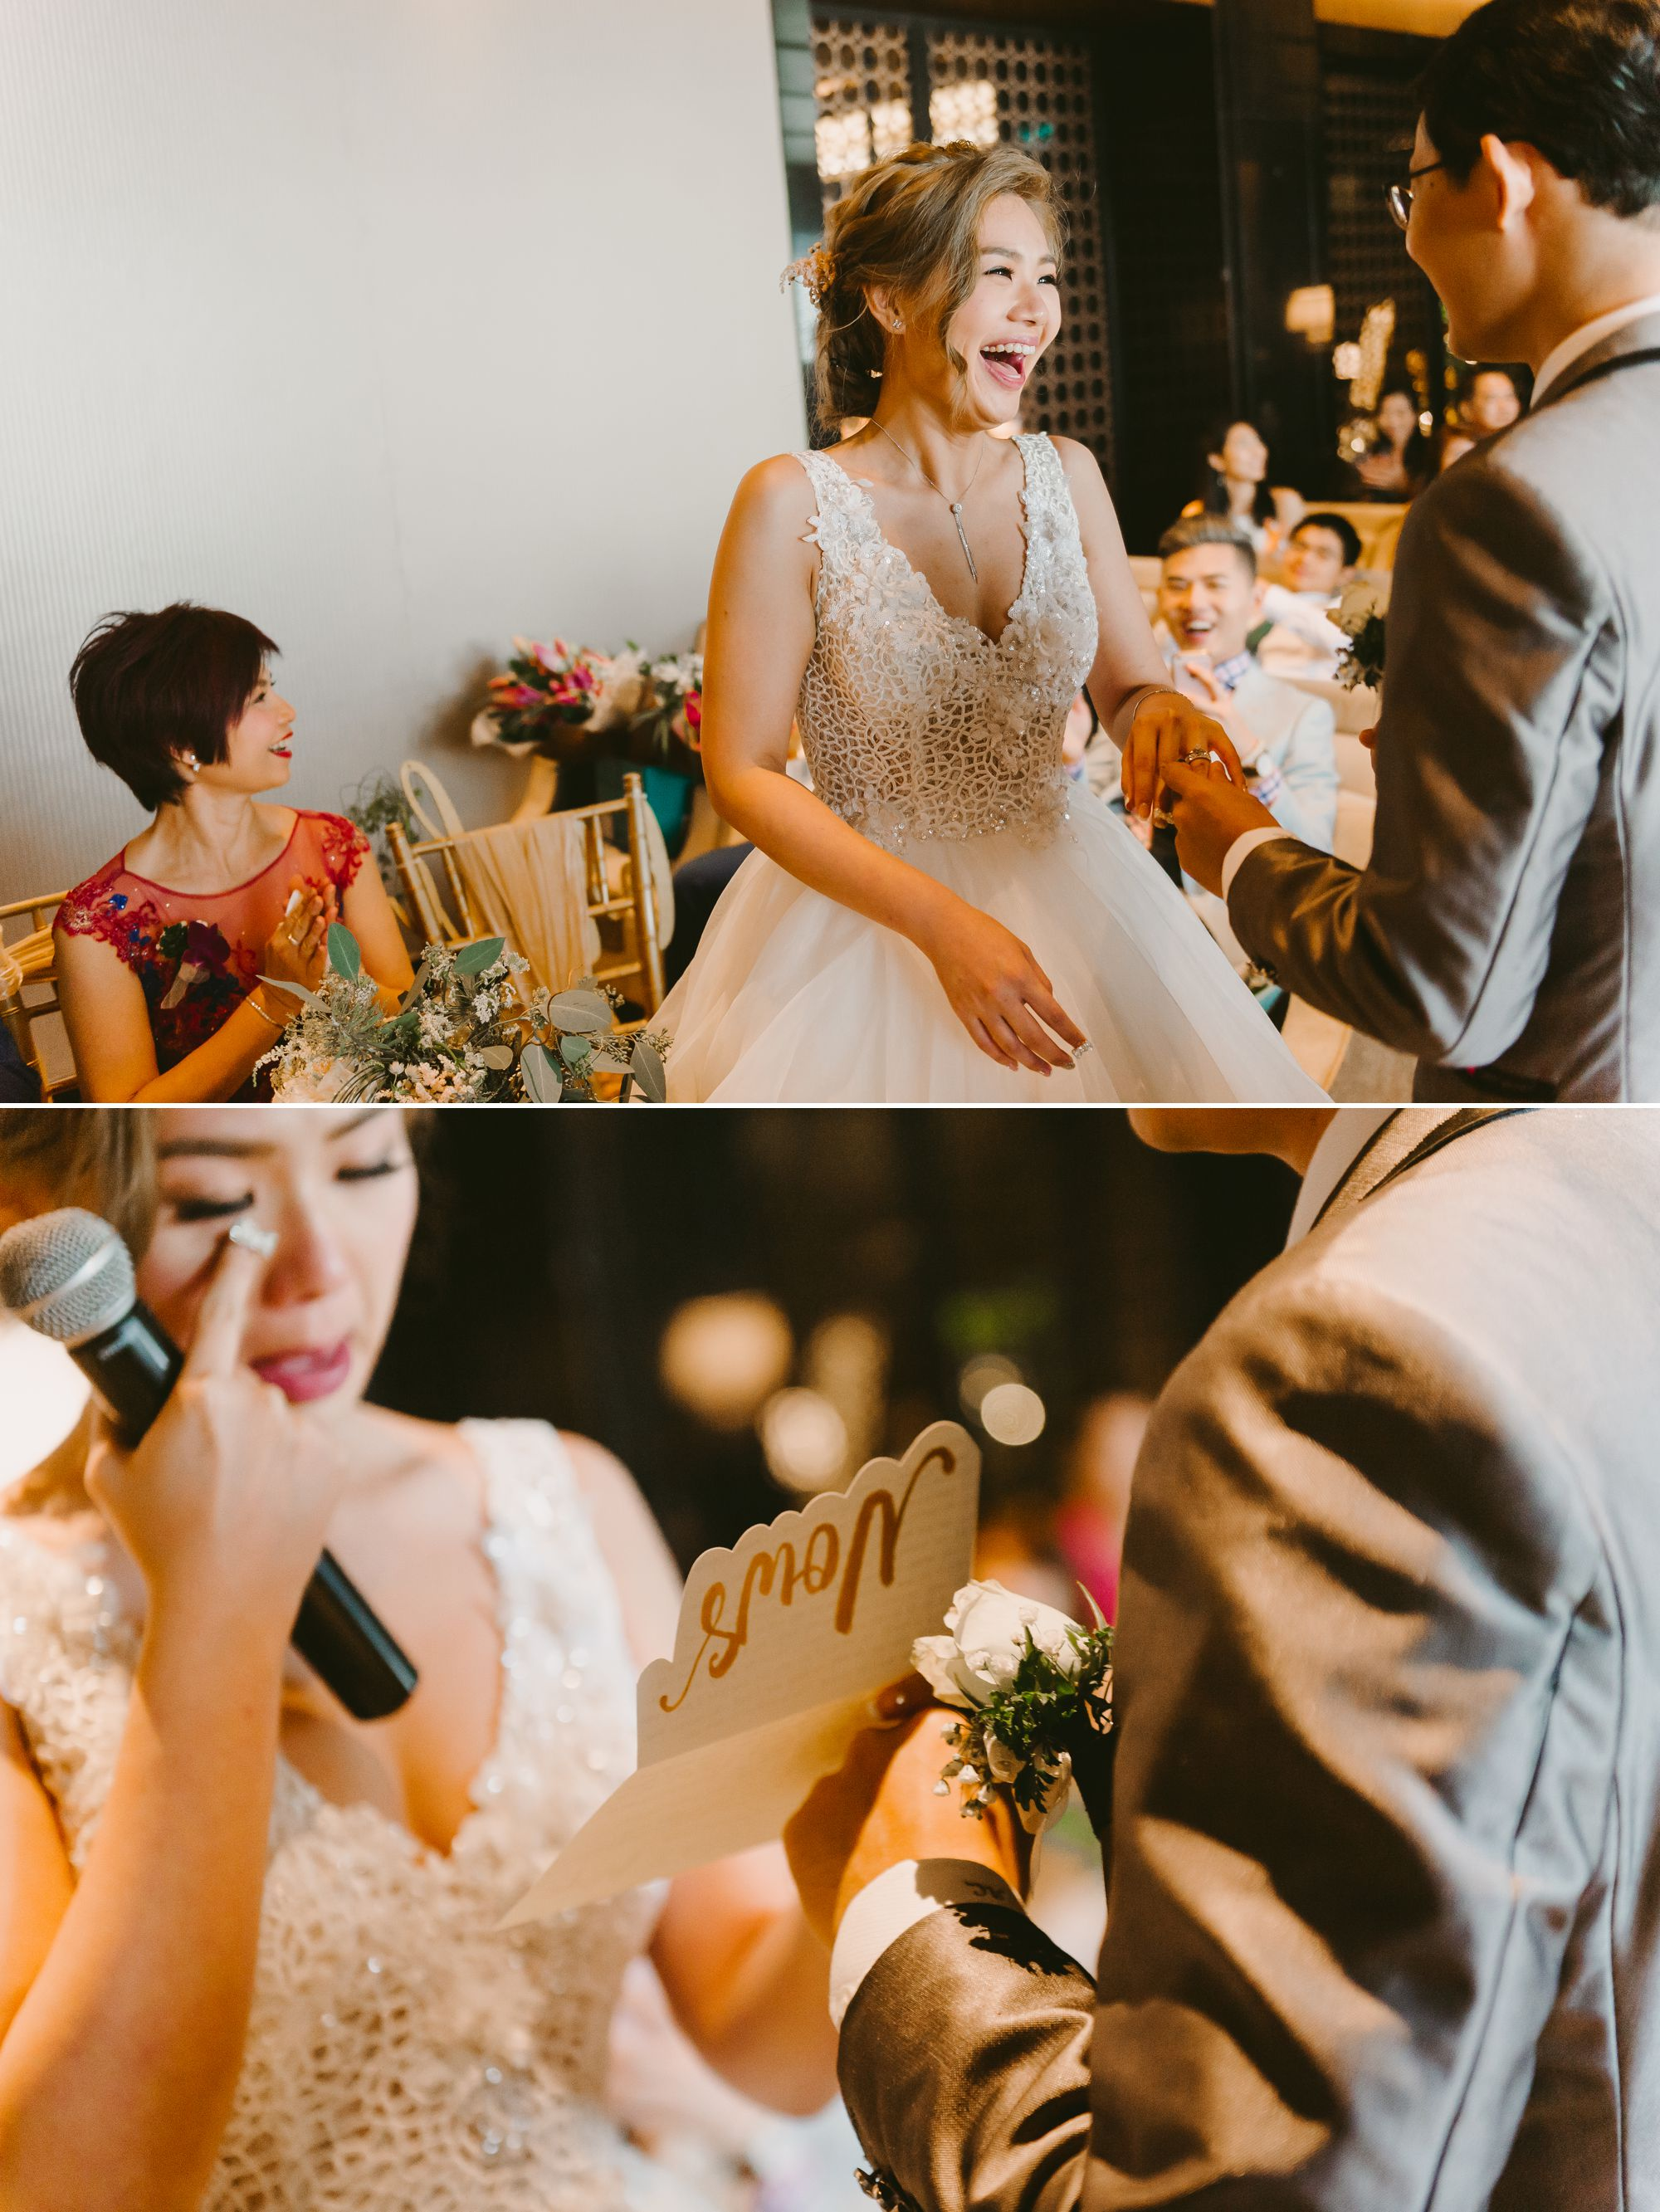 wedding_photographer_singapore 22.jpg